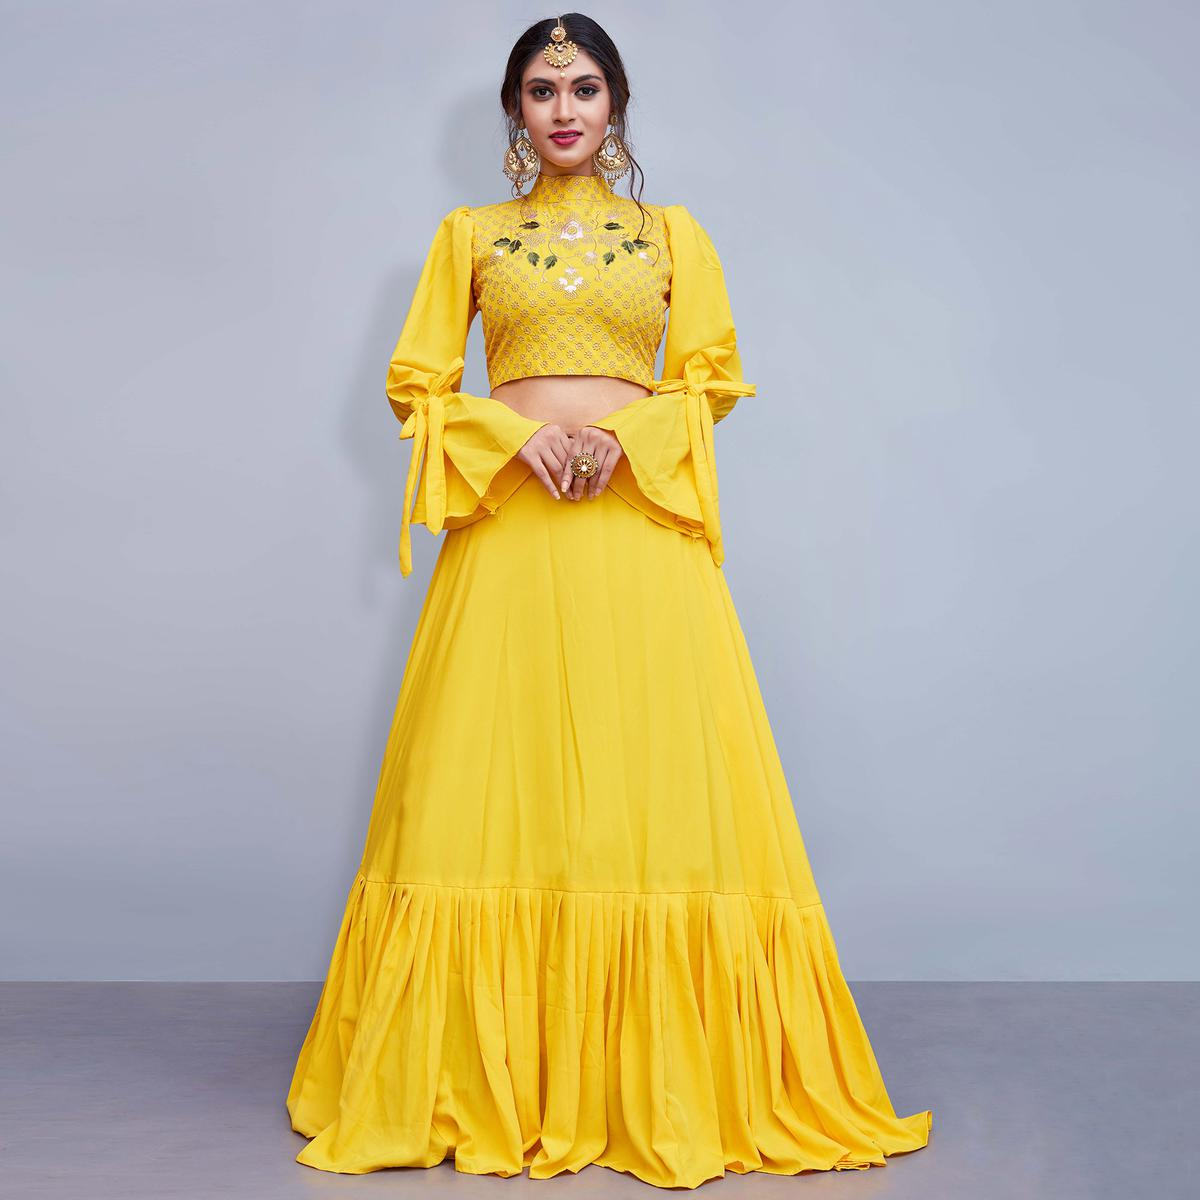 01d89a12abb7 Buy Dazzling Yellow Colored Party Wear Fancy Crape Silk Lehenga For womens  online India